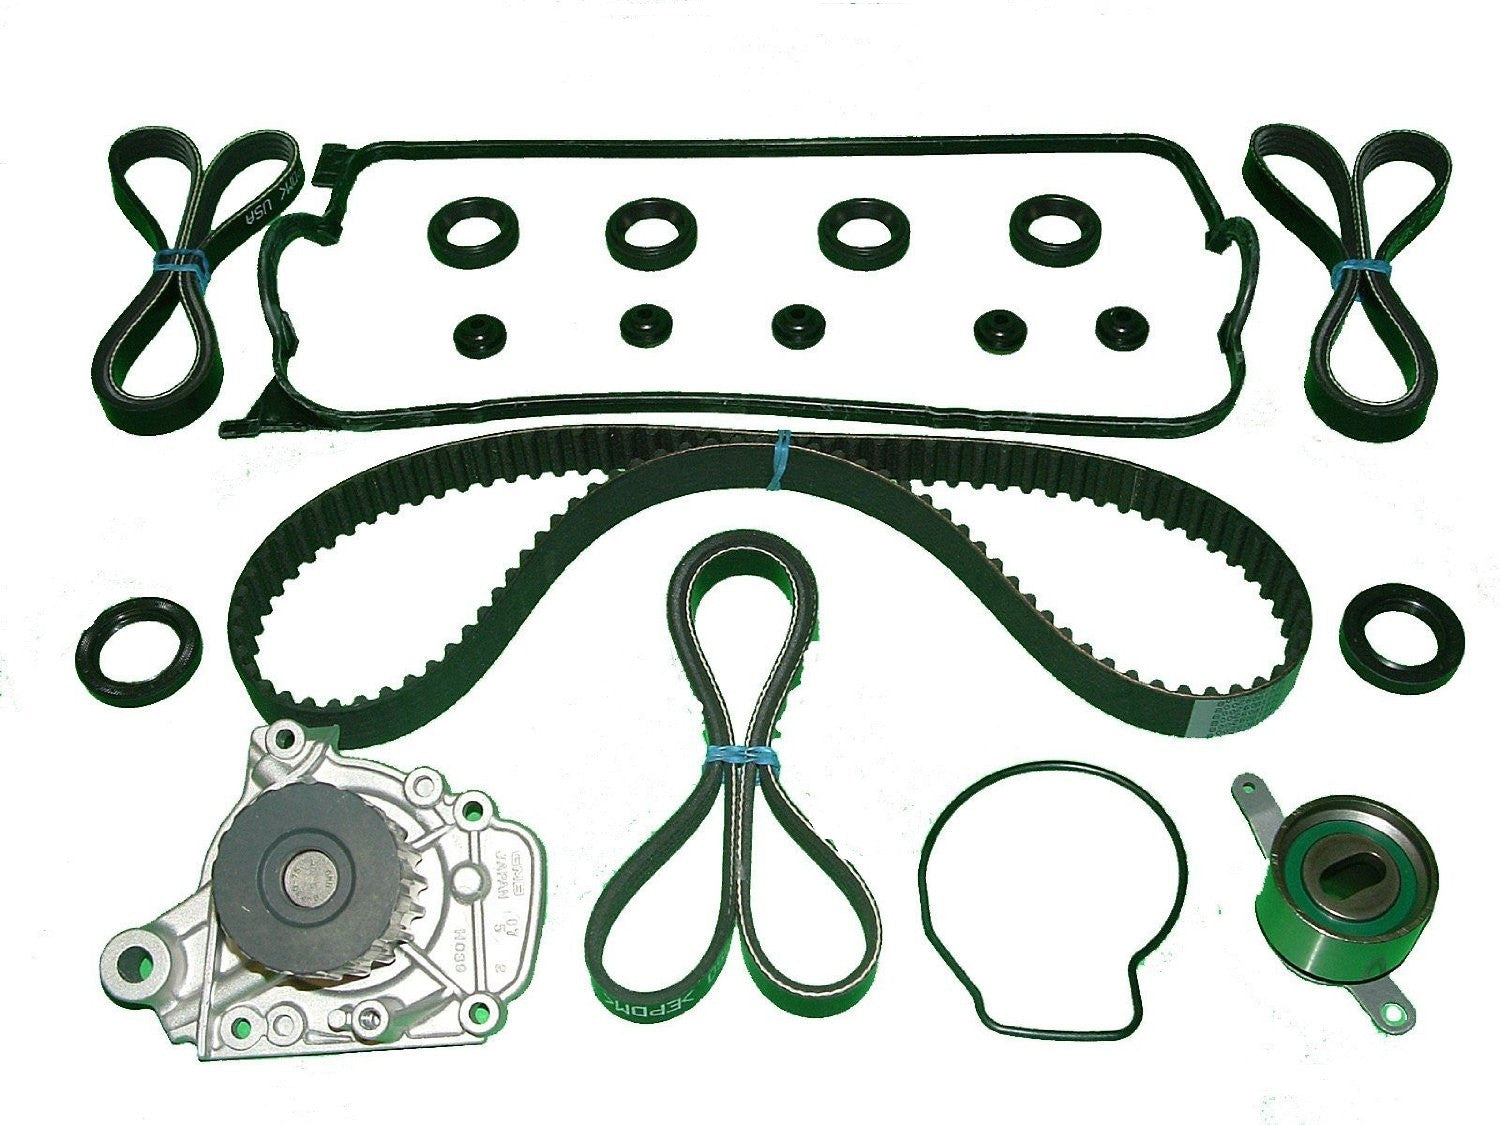 Https Daily 1998 Nissan Quest Timing Belt Kit Picture 10030v1468059569